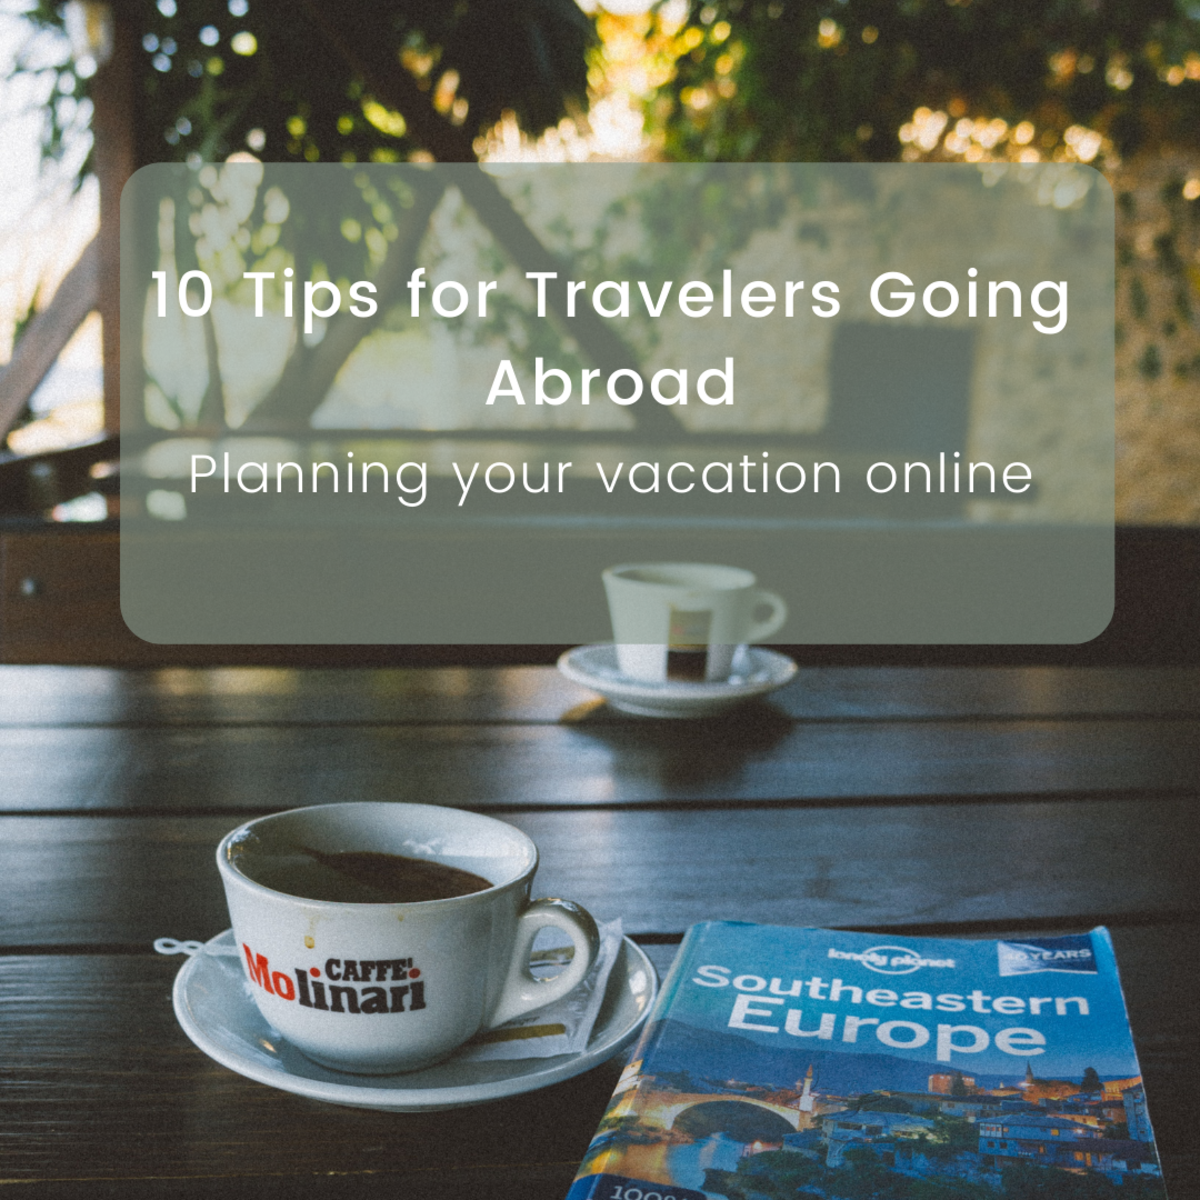 Tips for planning a trip abroad